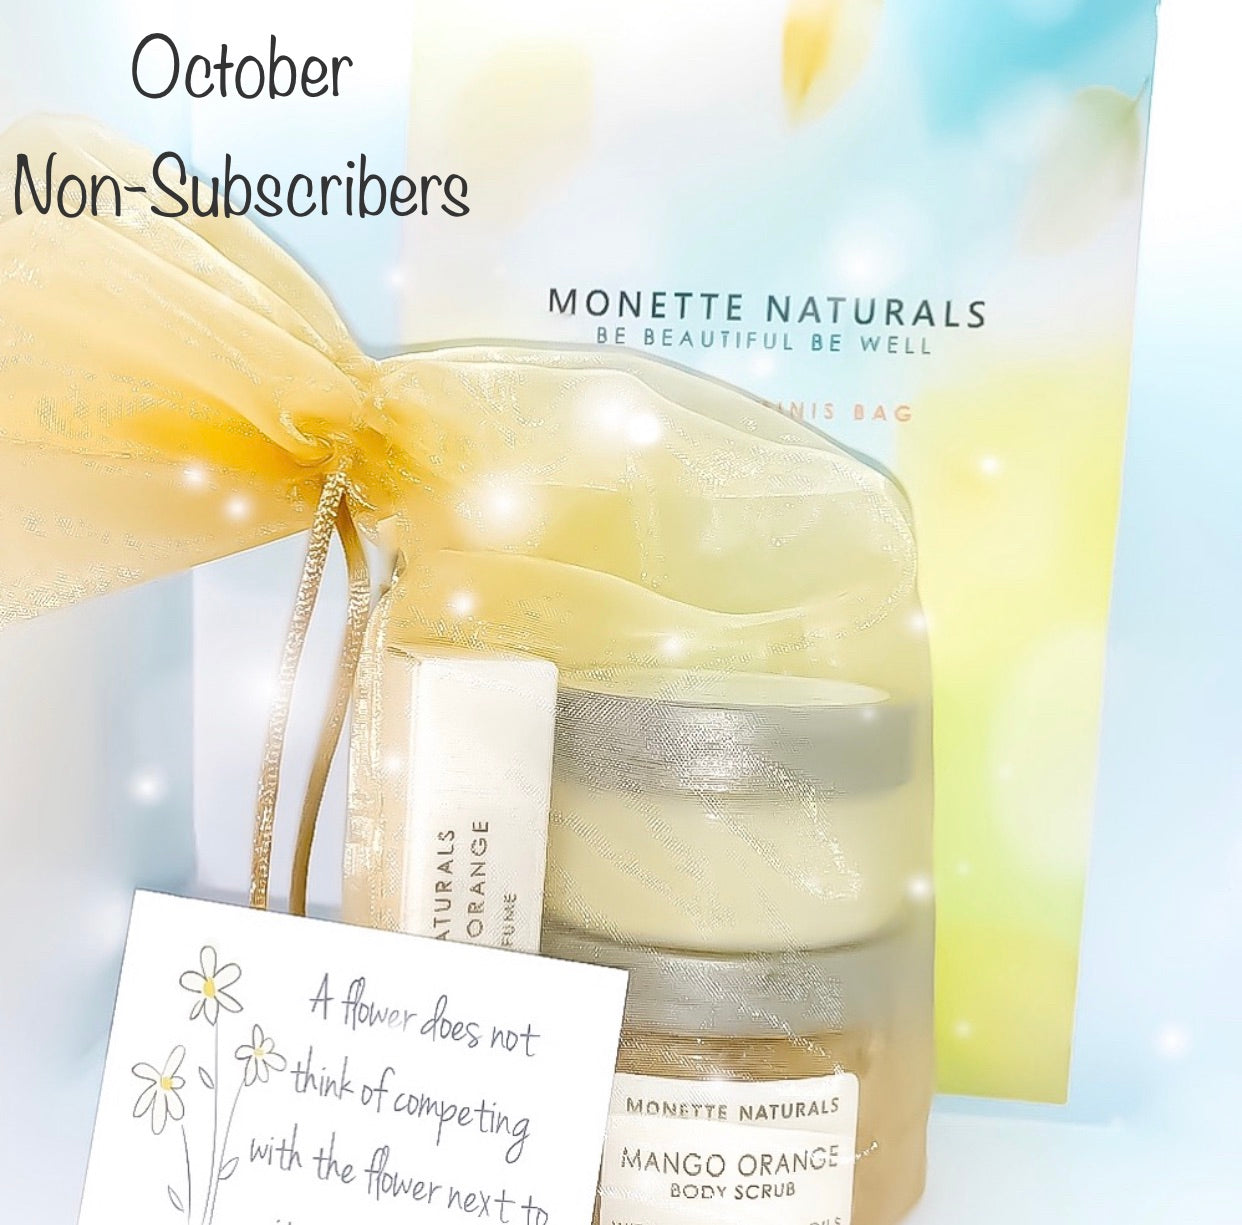 Monette Minis Bag - October (non-subscriber)